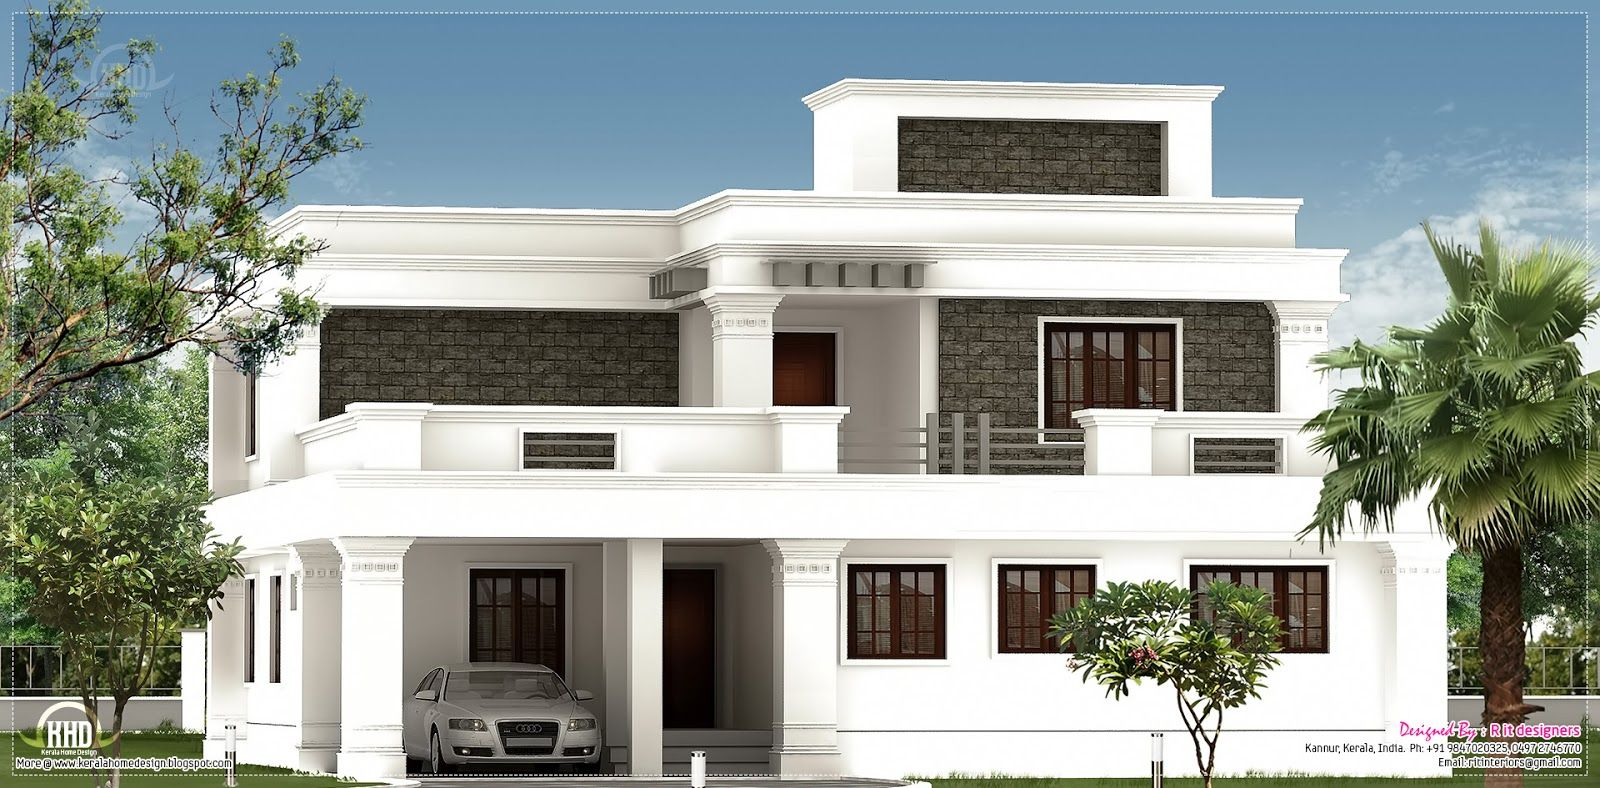 Flat roof homes designs flat roof villa exterior in 2400 for Indian home front design